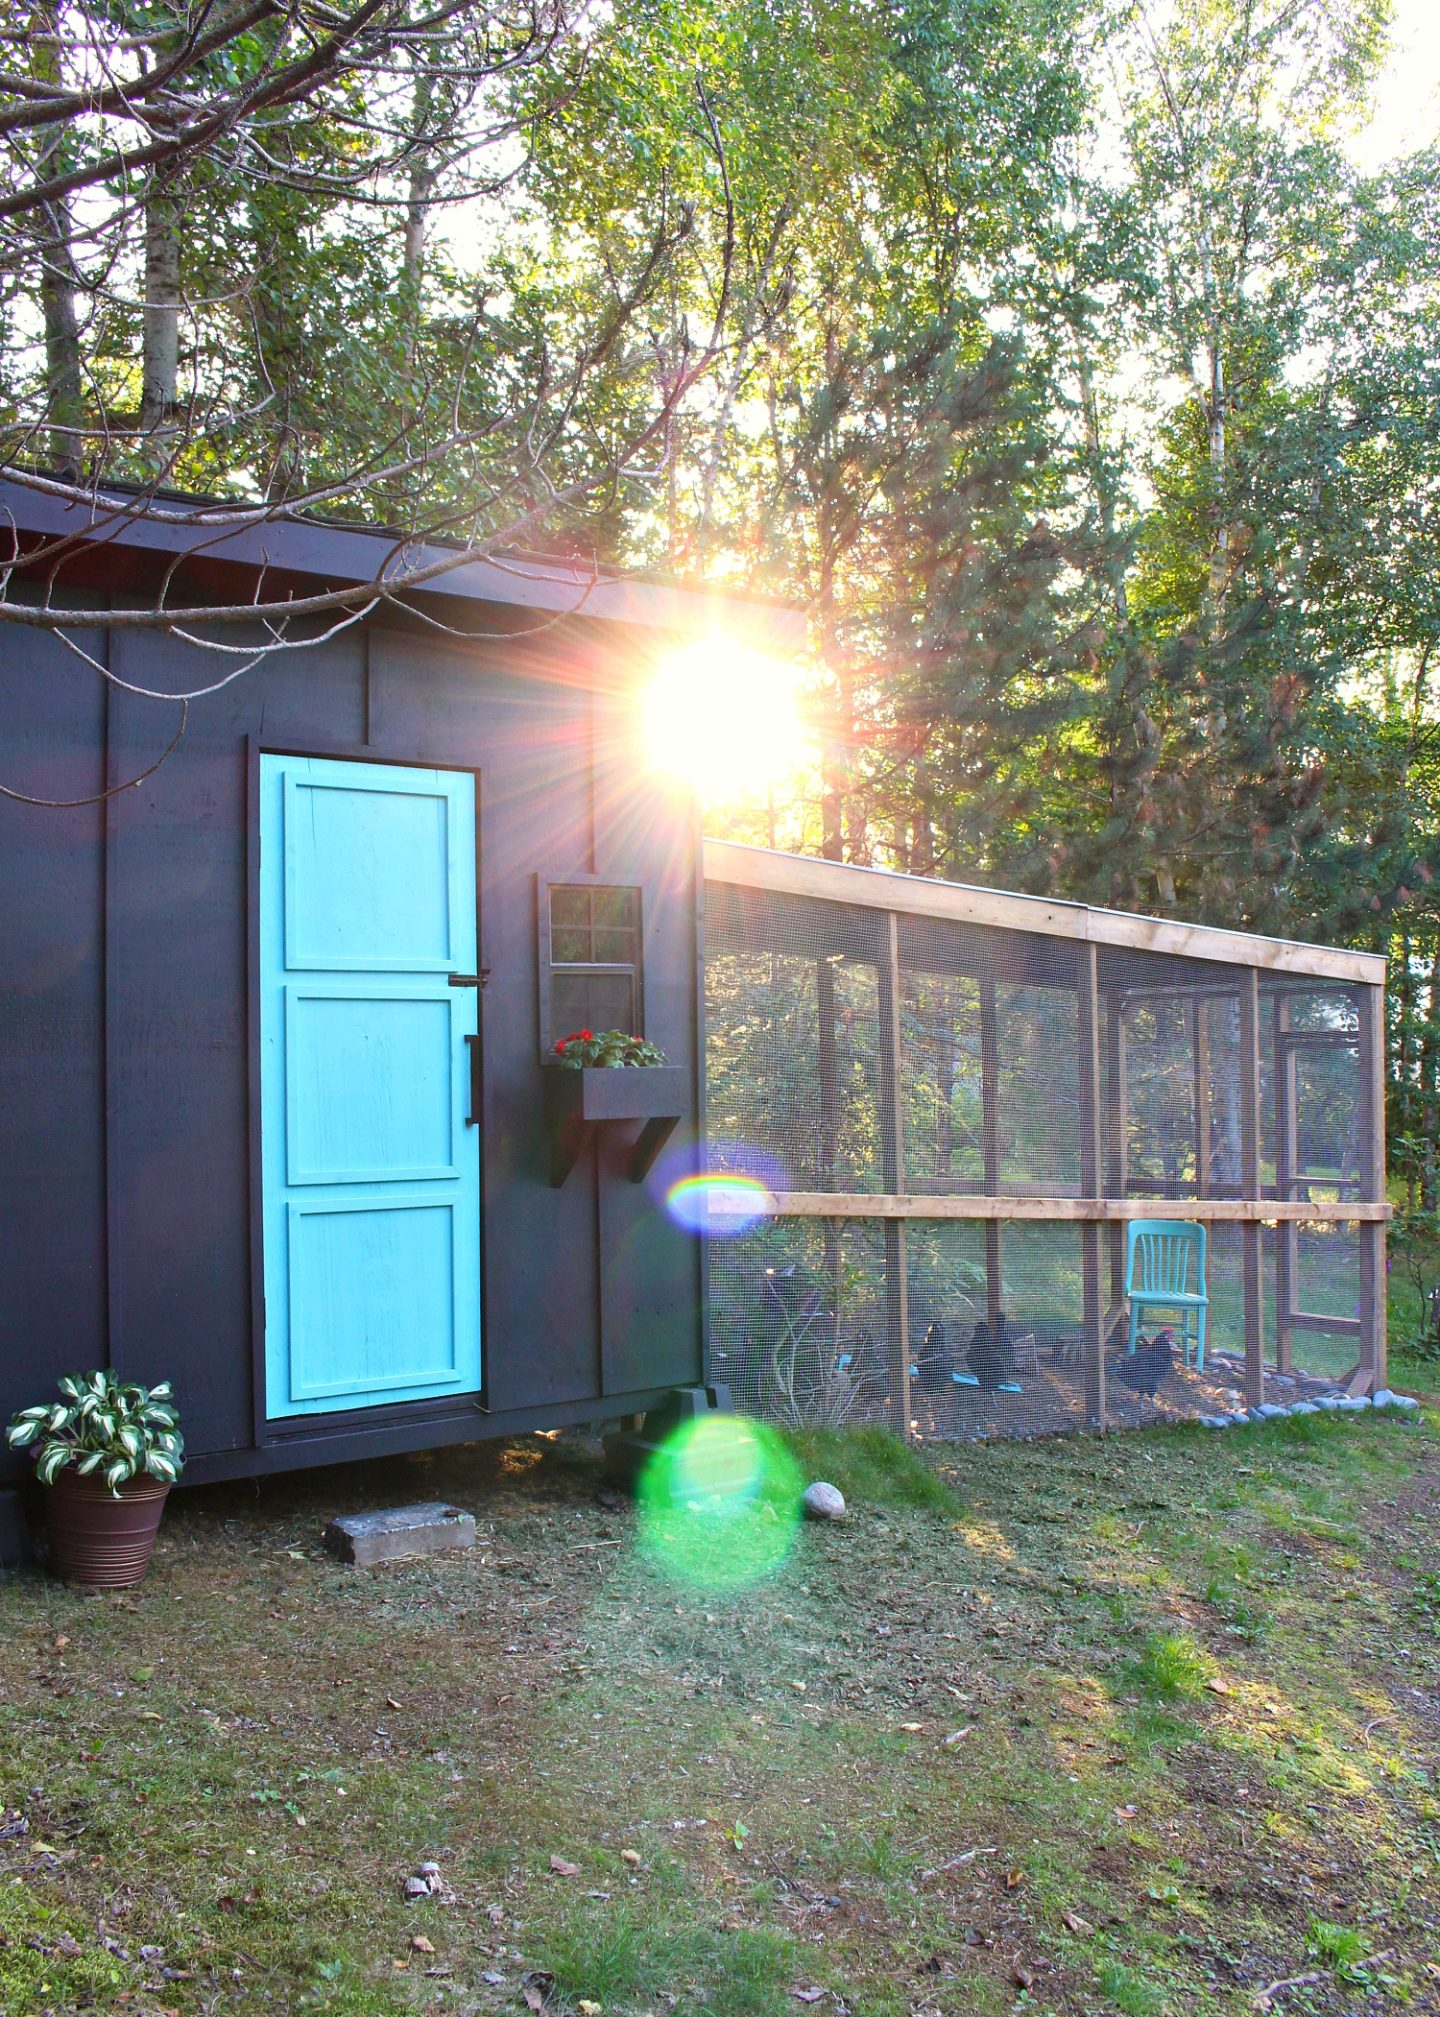 How to Build This Modern Chicken Coop and Run